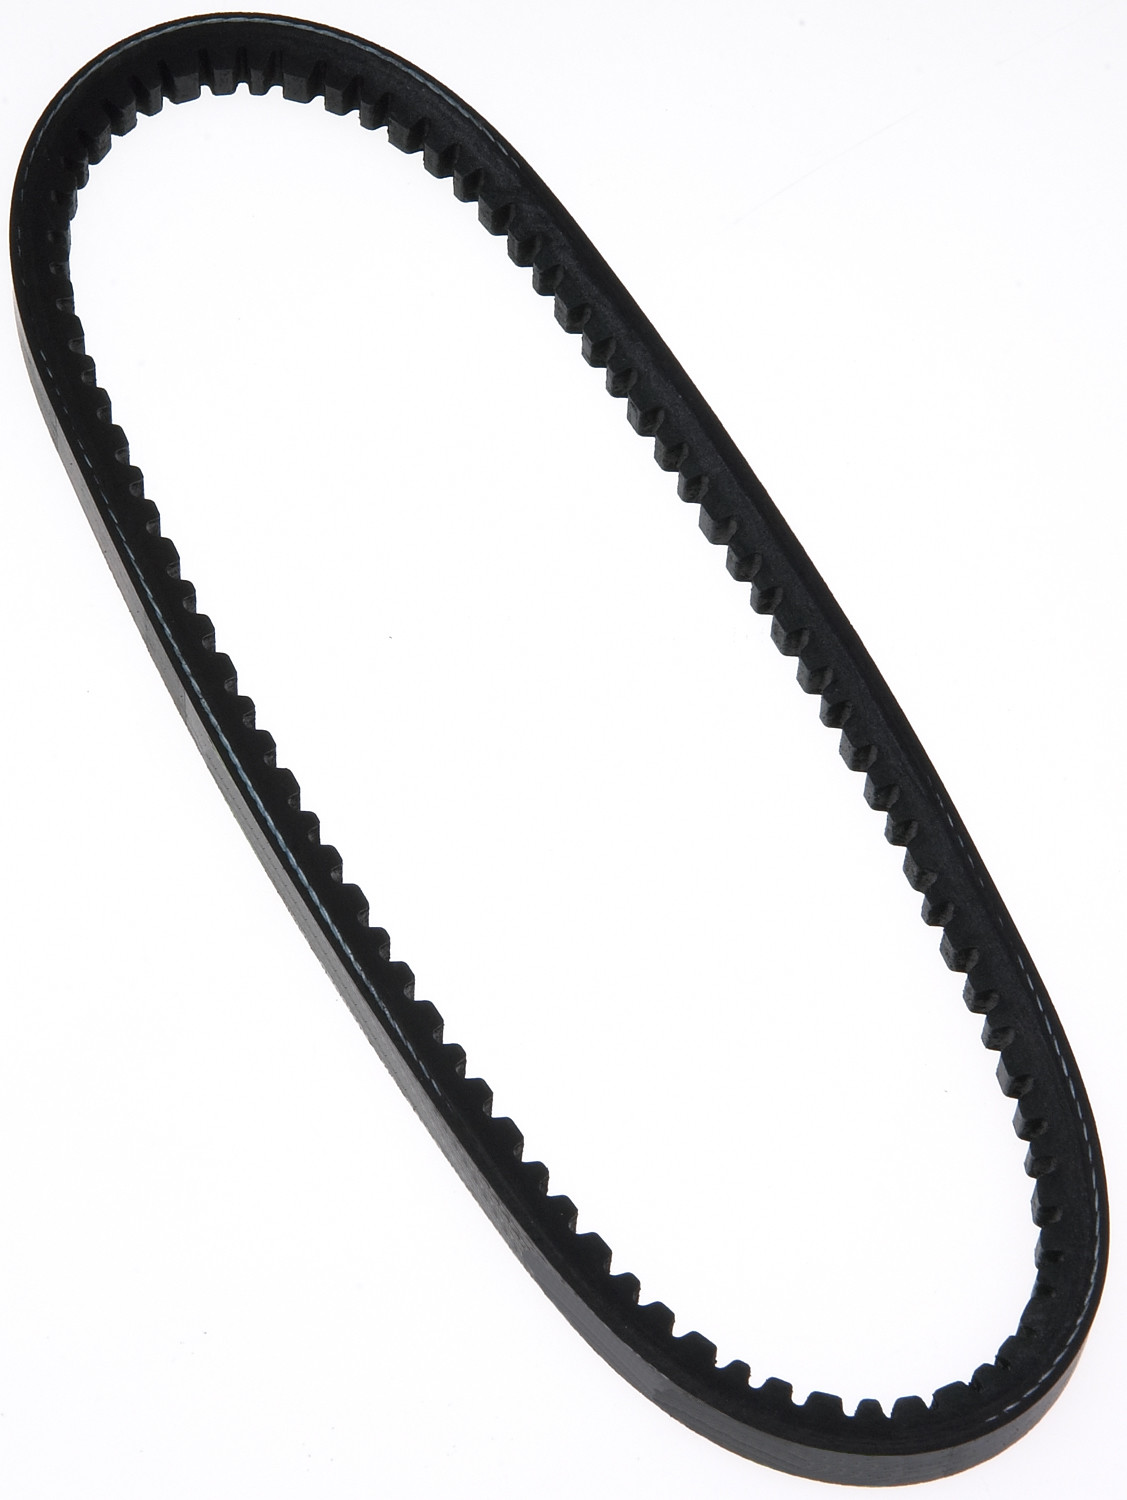 ROADMAX - High Capacity V-belt(standard) - RMX 17470AP